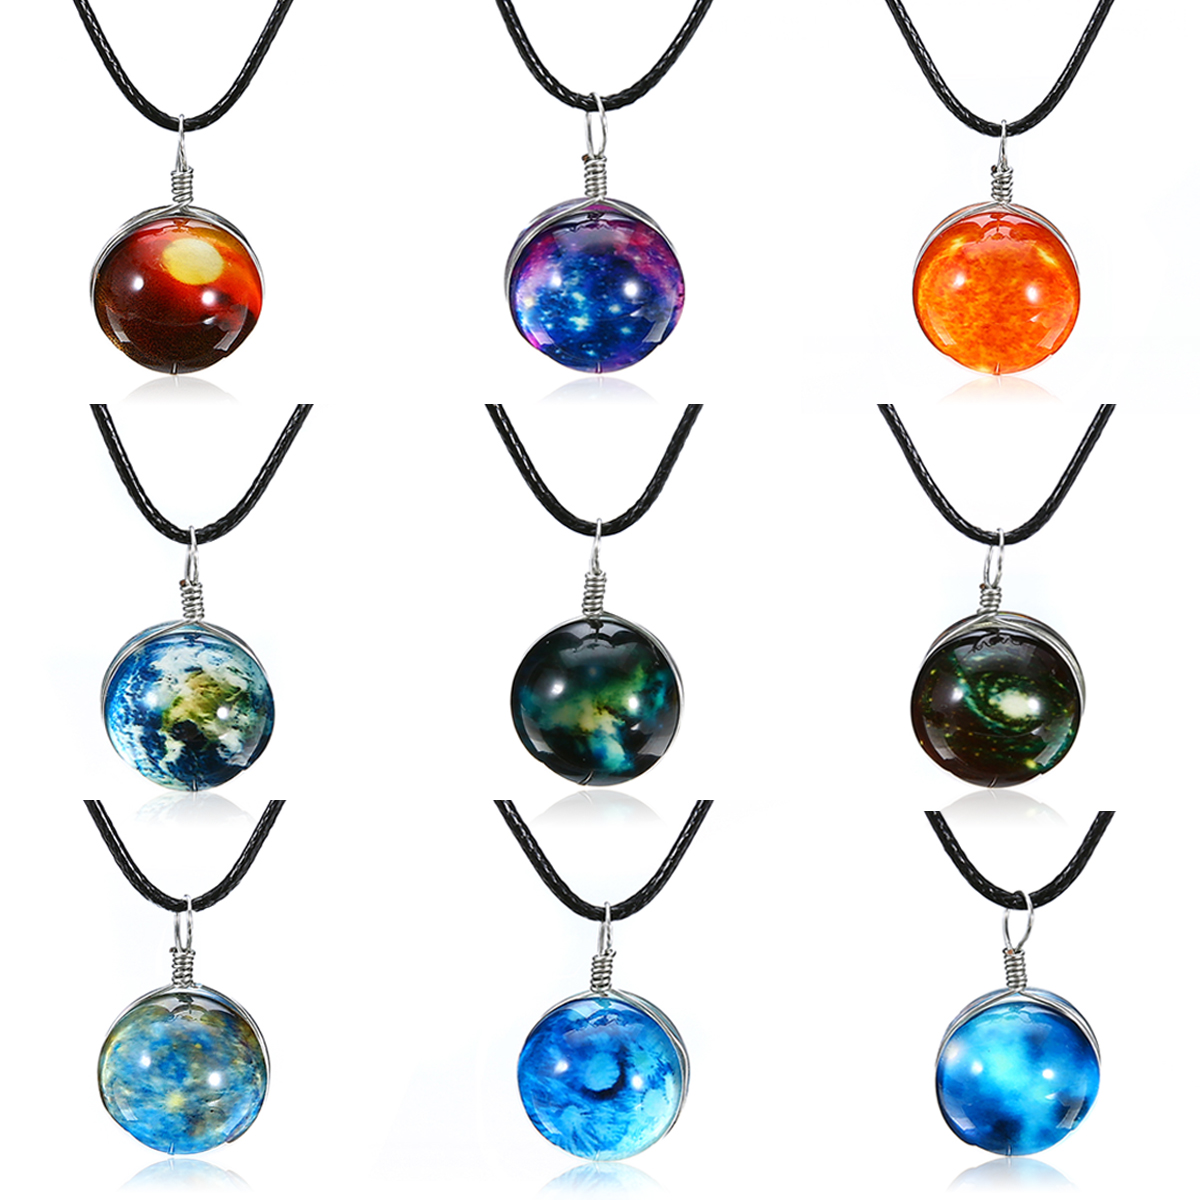 Shellhard Fashion Unisex Dreamy Glass Ball Star Universe Galaxy Pattern Pendant Necklace Colorful Charms Chain Luminous Jewelry in Pendant Necklaces from Jewelry Accessories